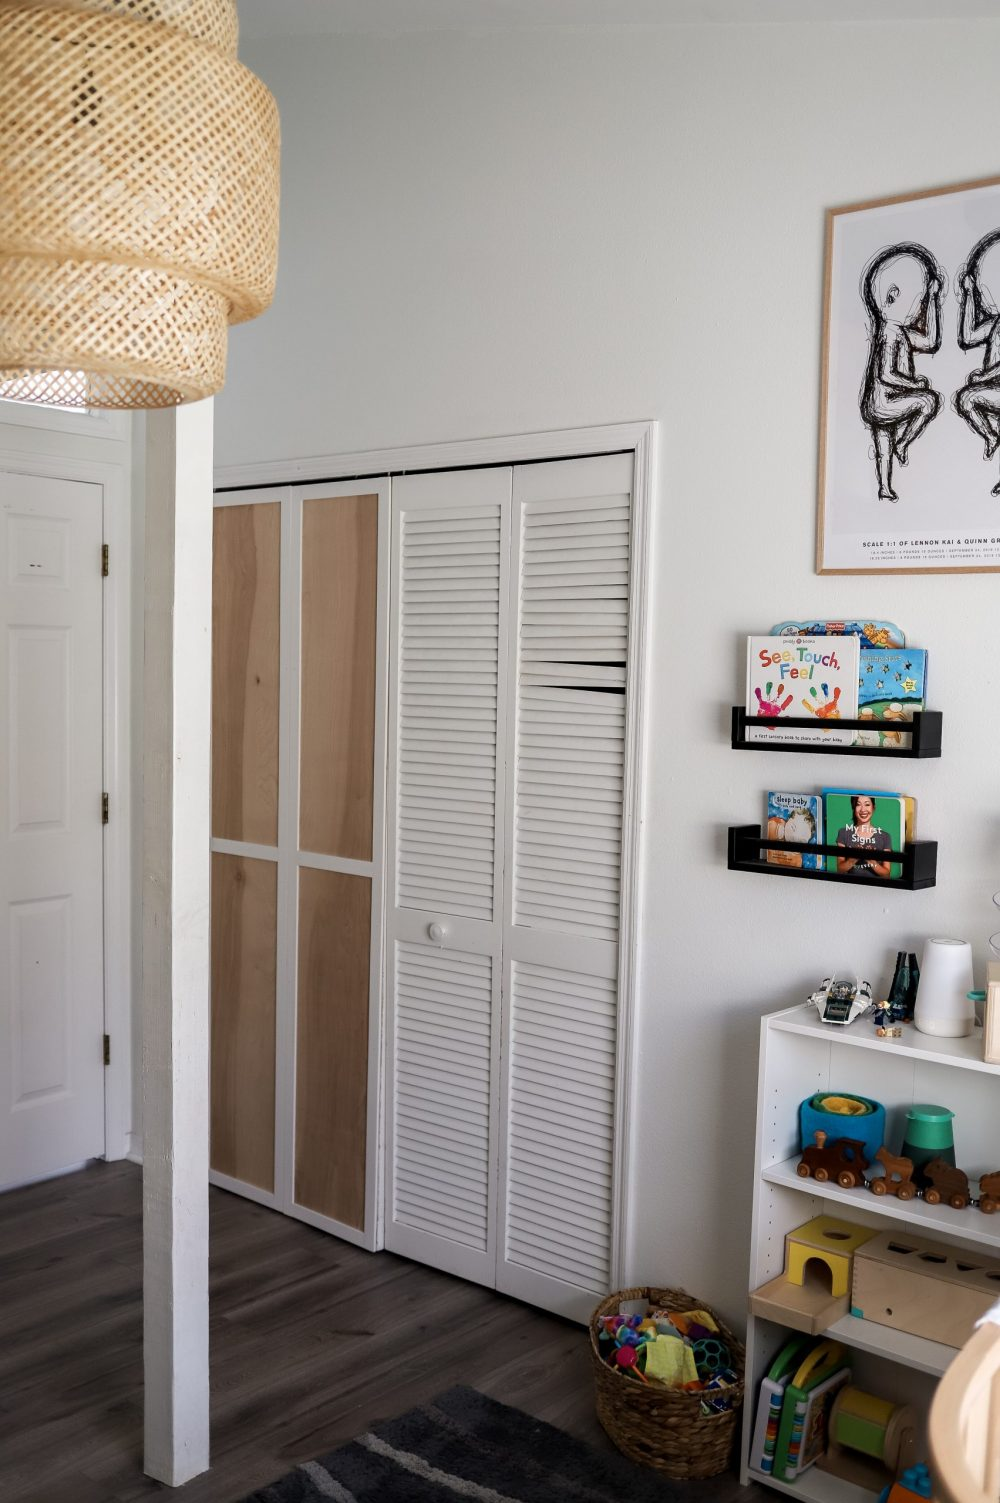 BEFORE. Home Refresh Ideas: DIY Closet Door Upgrade Tutorial. How to update Bi-fold closet doors on a budget. Easy how-to for updating old bifold closet doors and save money (save the hundreds it would cost to replace them!). |DIY Closet Door by popular Florida lifestyle blog, Fresh Mommy Blog: before image of bifold closet doors.